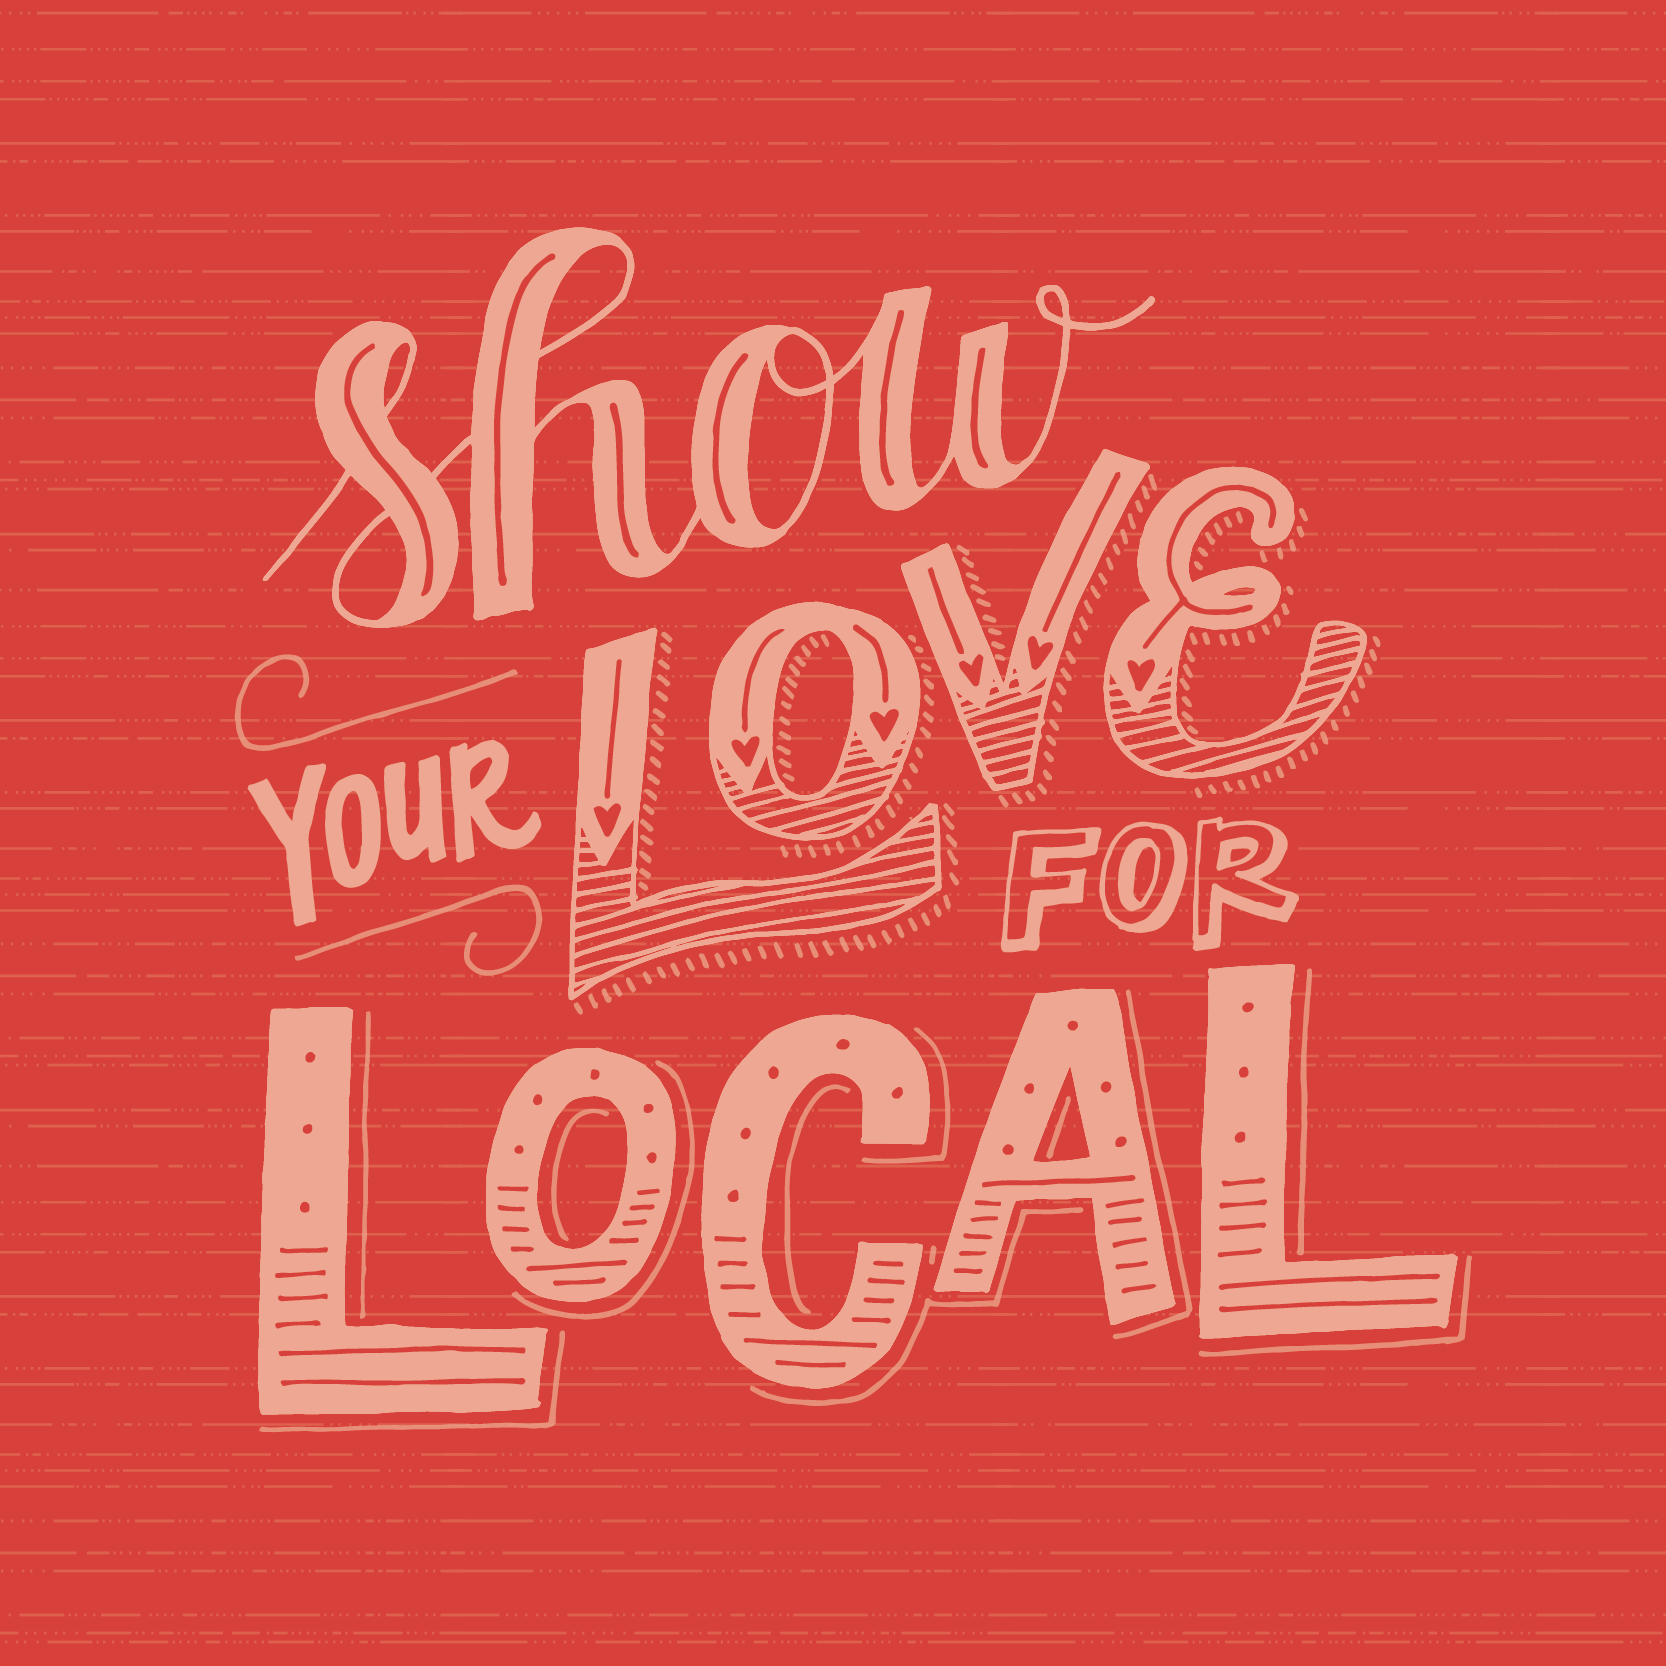 Show Your Love for Local Design